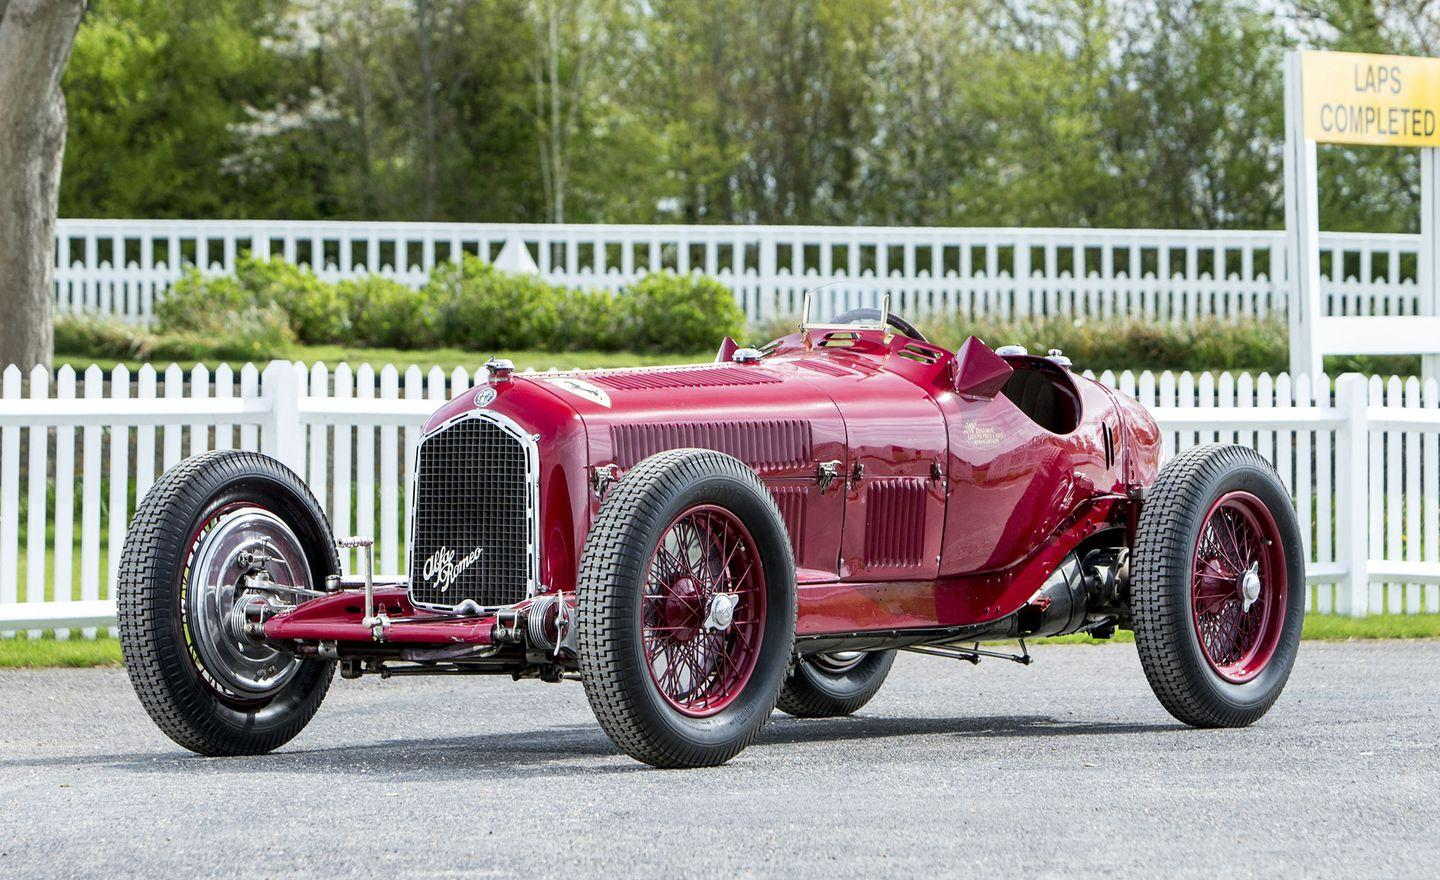 "<p>Scroll through this auction roundup and (spoiler alert!) you're going to see a lot of Ferraris. This is one of the not-Ferraris, an Alfa Romeo . . . but it was originally campaigned by Scuderia Ferrari before it struck out in its own. It is a Tipo B grand-prix racer from the early 1930s, predating the outbreak of the Second World War and the subsequent advent of the modern Formula One World Championship. This Alfa was one of the first ""Monopostos""-single-seat racing cars with a centered cockpit-and it would go down as one of the most victorious examples. Noted racer, aviator, and collector Richard Ormonde Shuttleworth acquired the Tipo B from the Scuderia in 1935 and drove it to victory in the grand prix at Donington that year. More than eight decades later, <a href=""https://www.caranddriver.com/features/g22239650/the-10-most-expensive-cars-sold-at-the-2018-goodwood-auction/?slide=10"" rel=""nofollow noopener"" target=""_blank"" data-ylk=""slk:it sold at Goodwood in July 2018 for £4.6 million"" class=""link rapid-noclick-resp"">it sold at Goodwood in July 2018 for £4.6 million</a>, which translates to just over $6 million in U.S. dollars.</p>"